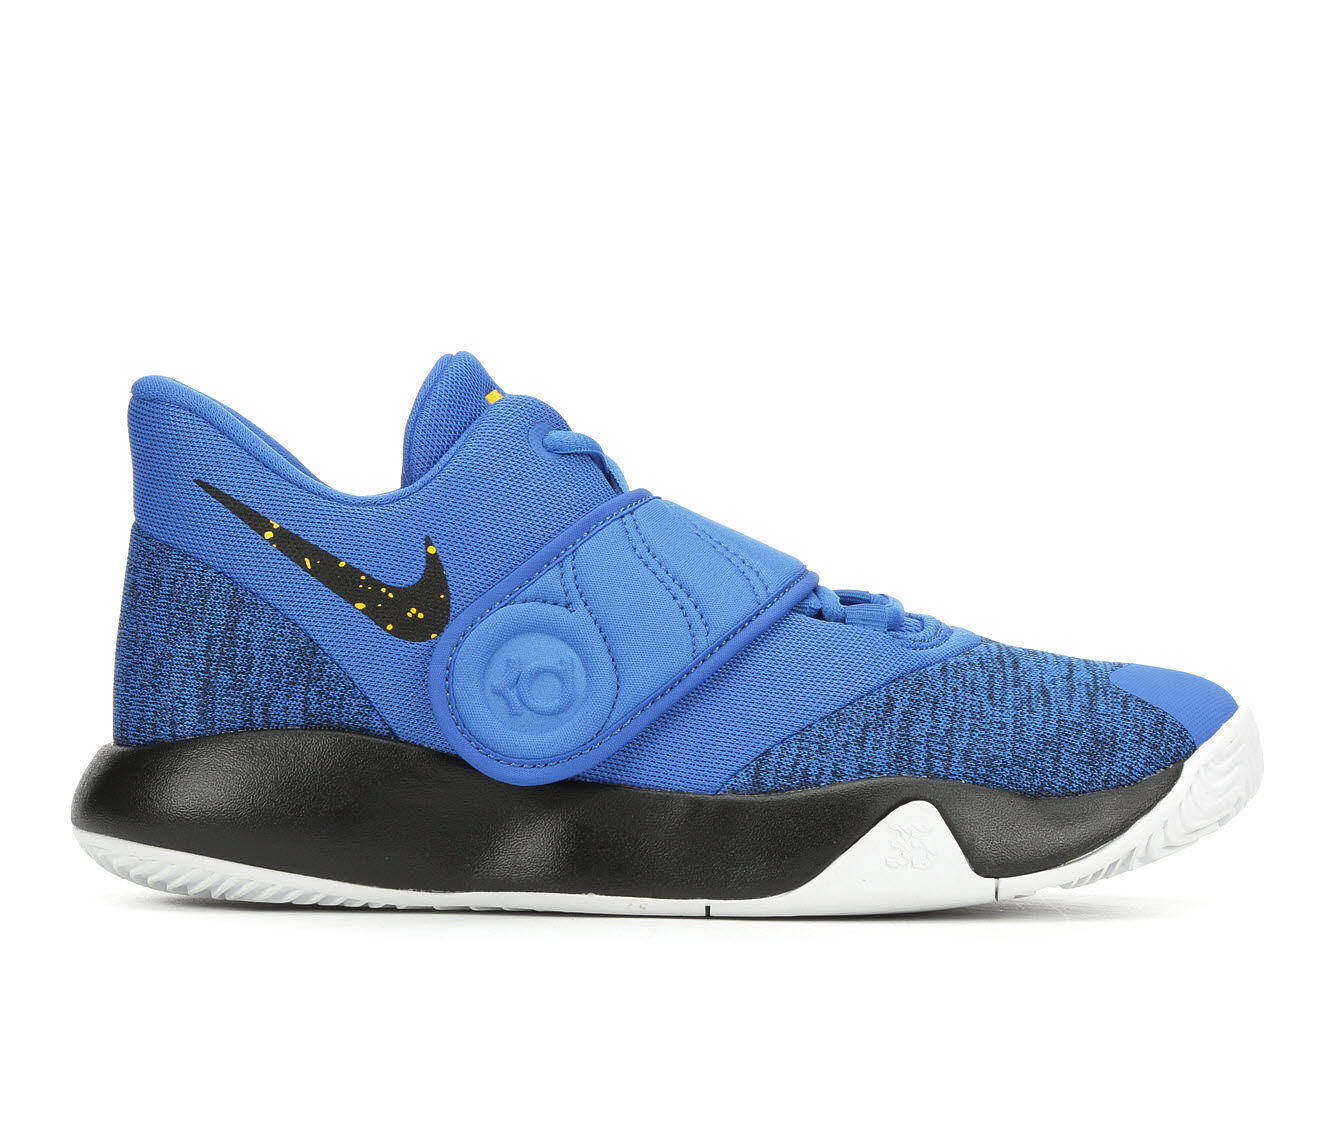 837098eb8f6a ... low price nike big kid kd trey 5 vi high top basketball shoes. carousel  controls